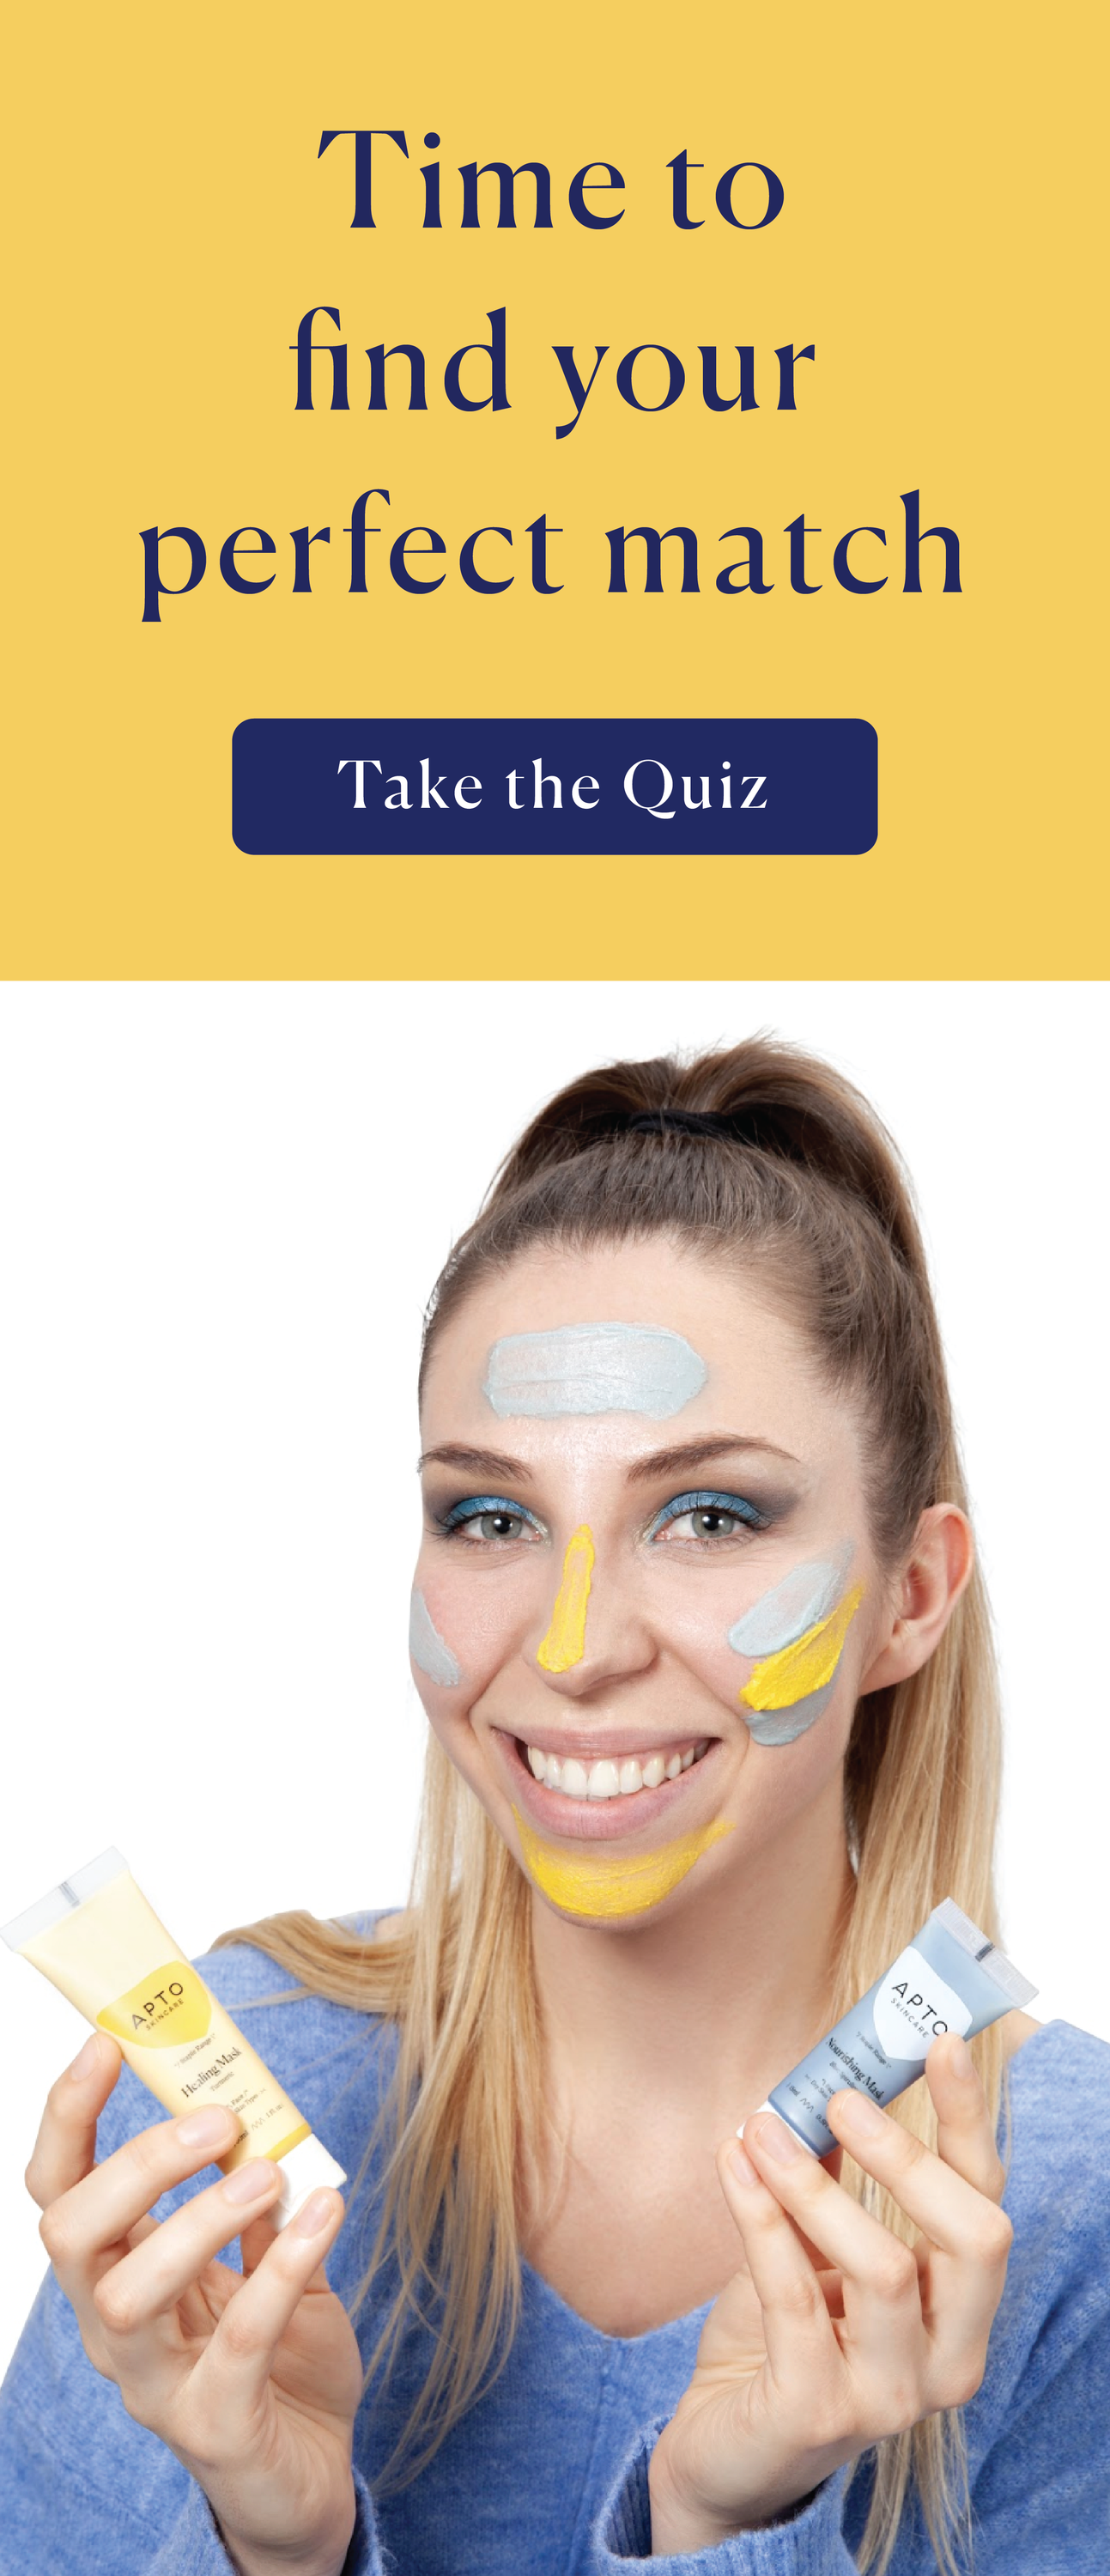 Discover The Best Beauty Products For You And Your Skin Type We Have Created This Quiz To Help You Find The Perfect M Skin Care Quiz Beauty Routines Skin Care